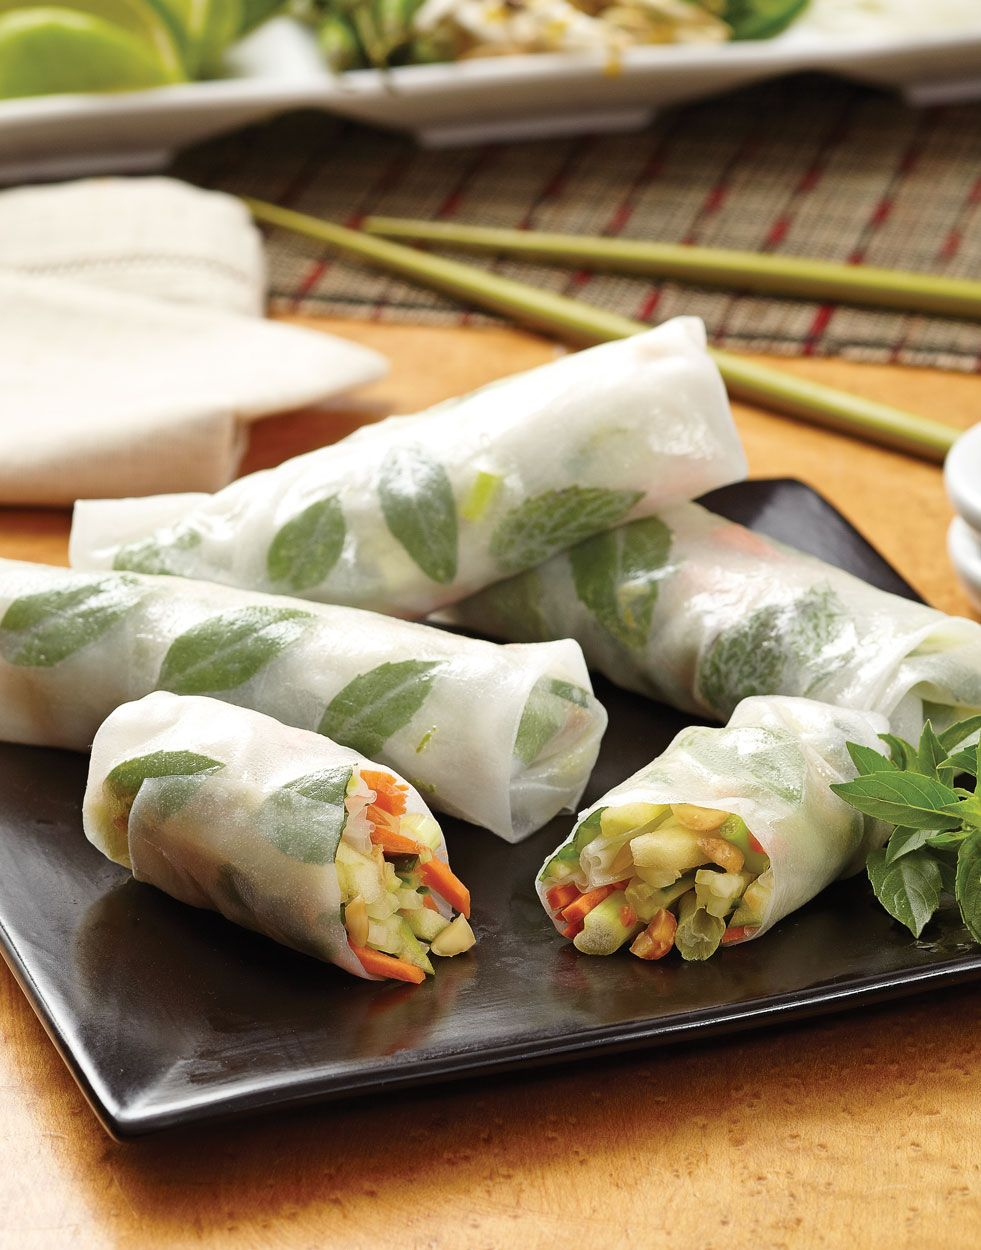 Cucumber Spring Rolls With Apple And Peanuts